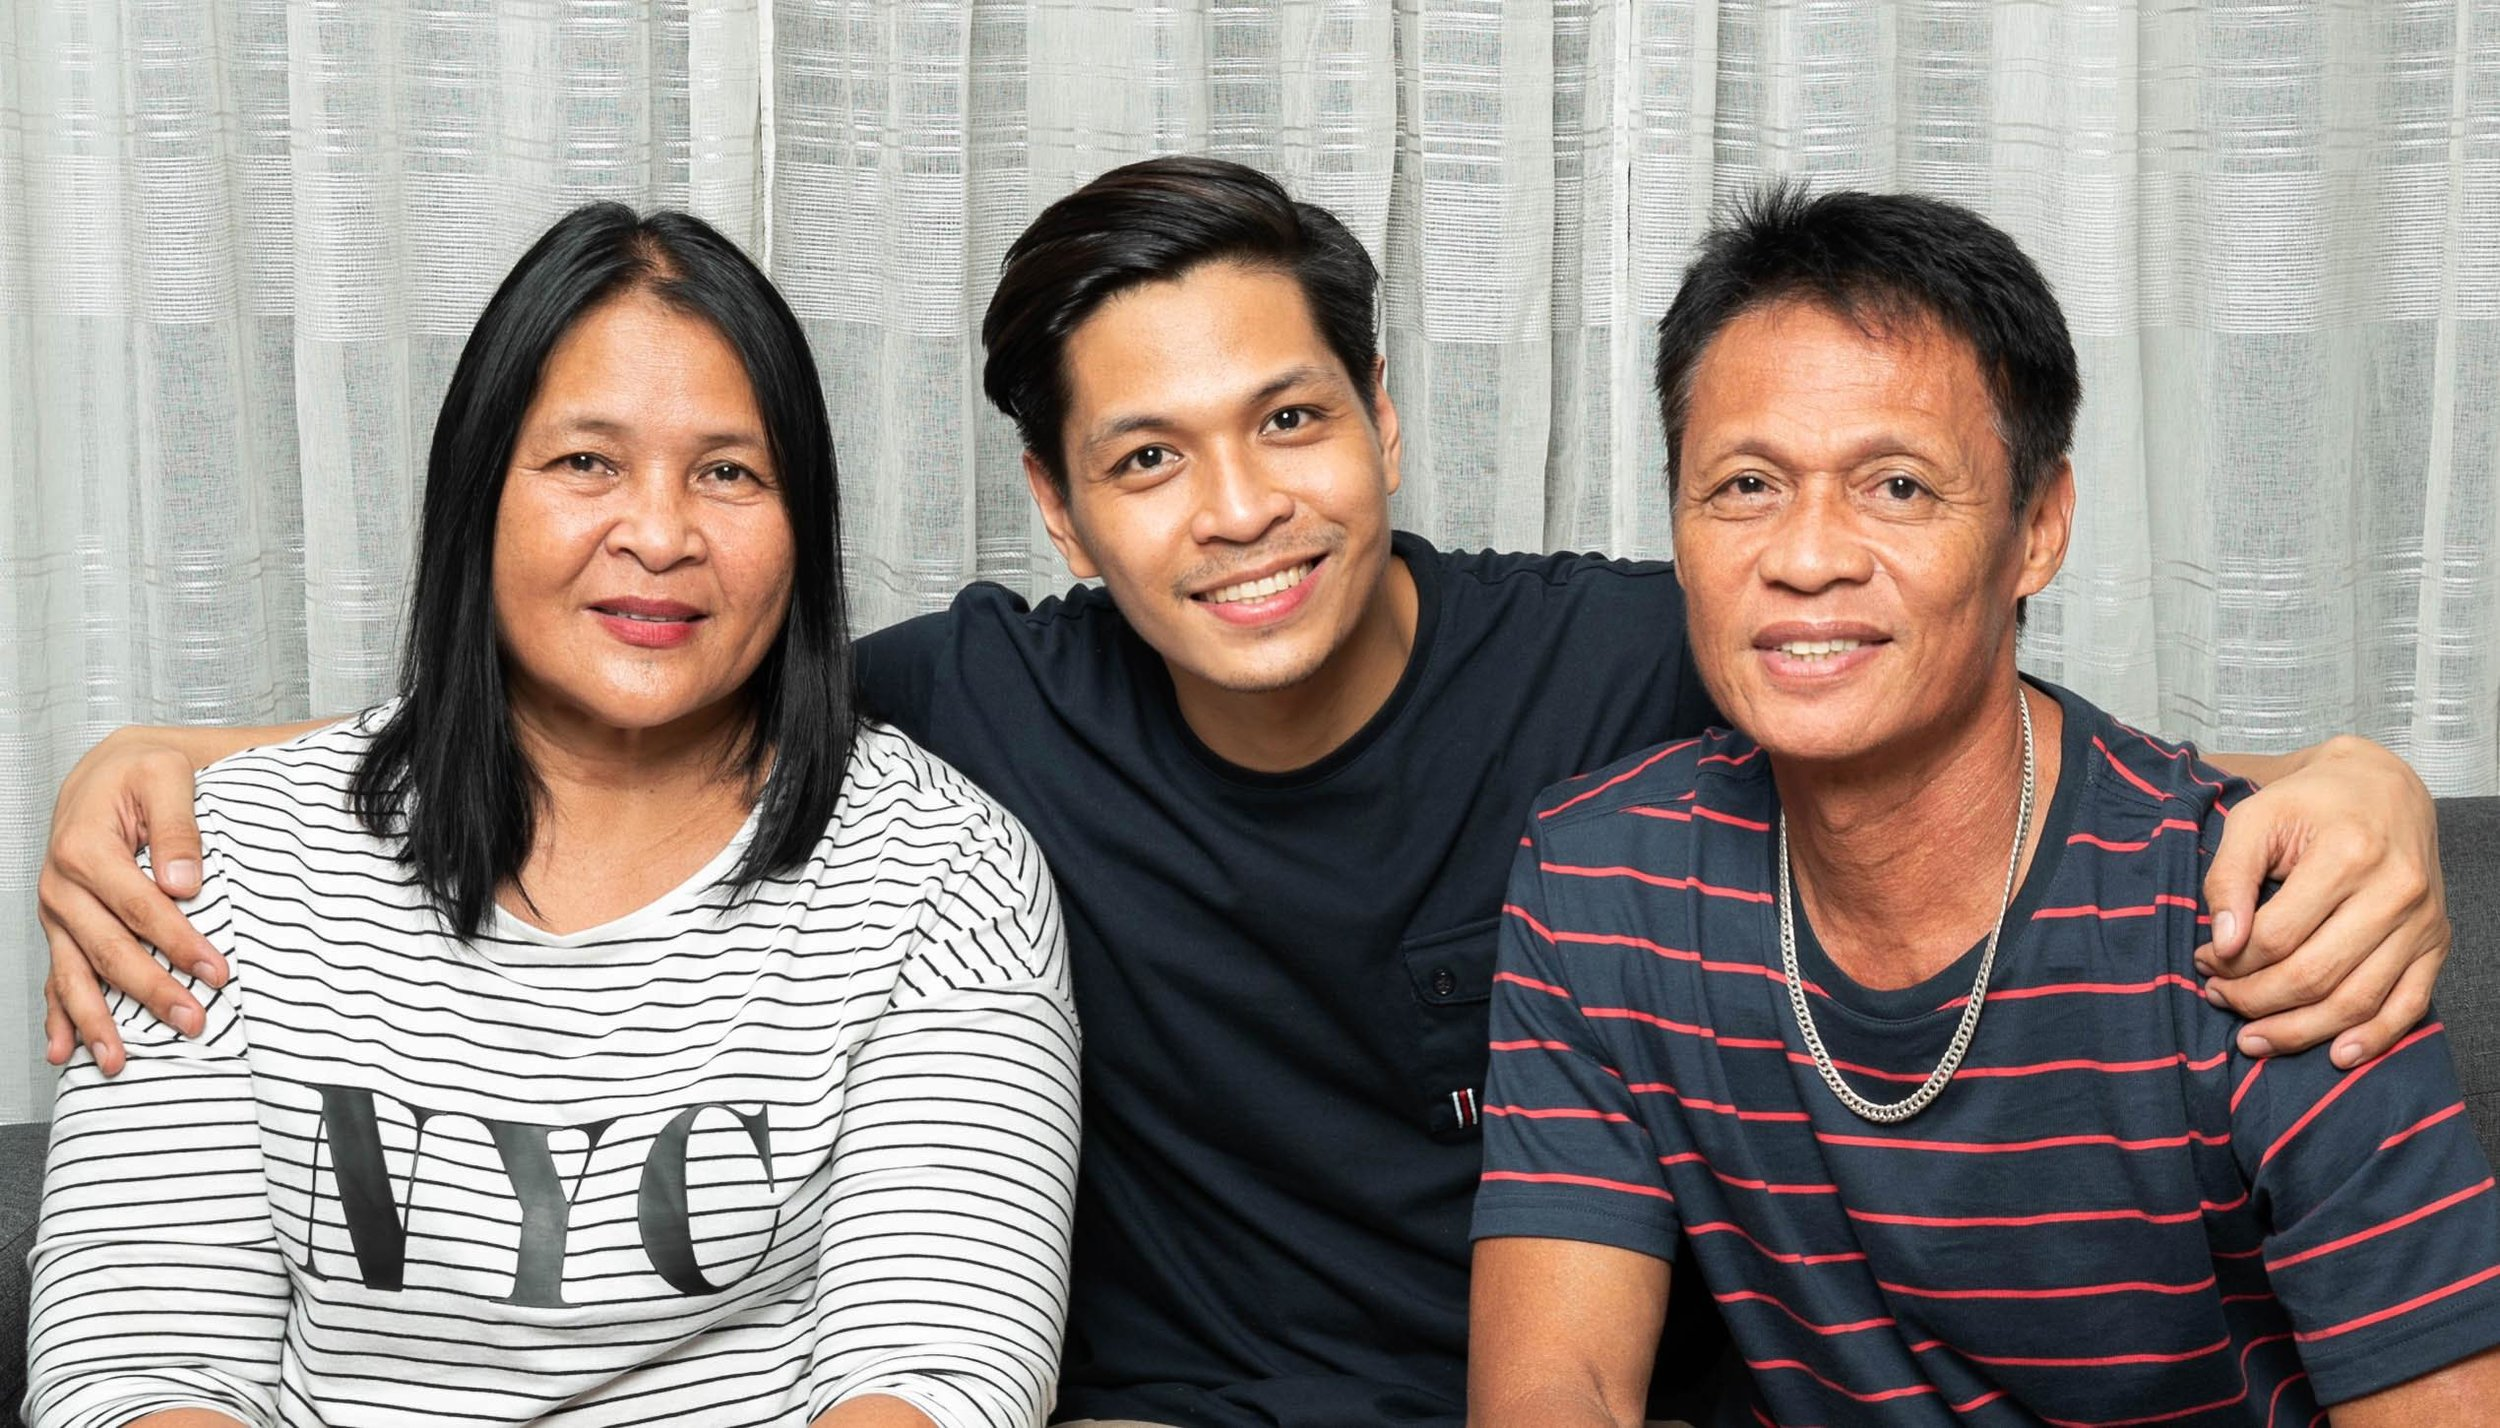 Mark is an only child who welcomes his parents Antonio and Sulieta's every visit to him in Manila from their hometown of Cagayan de Oro.